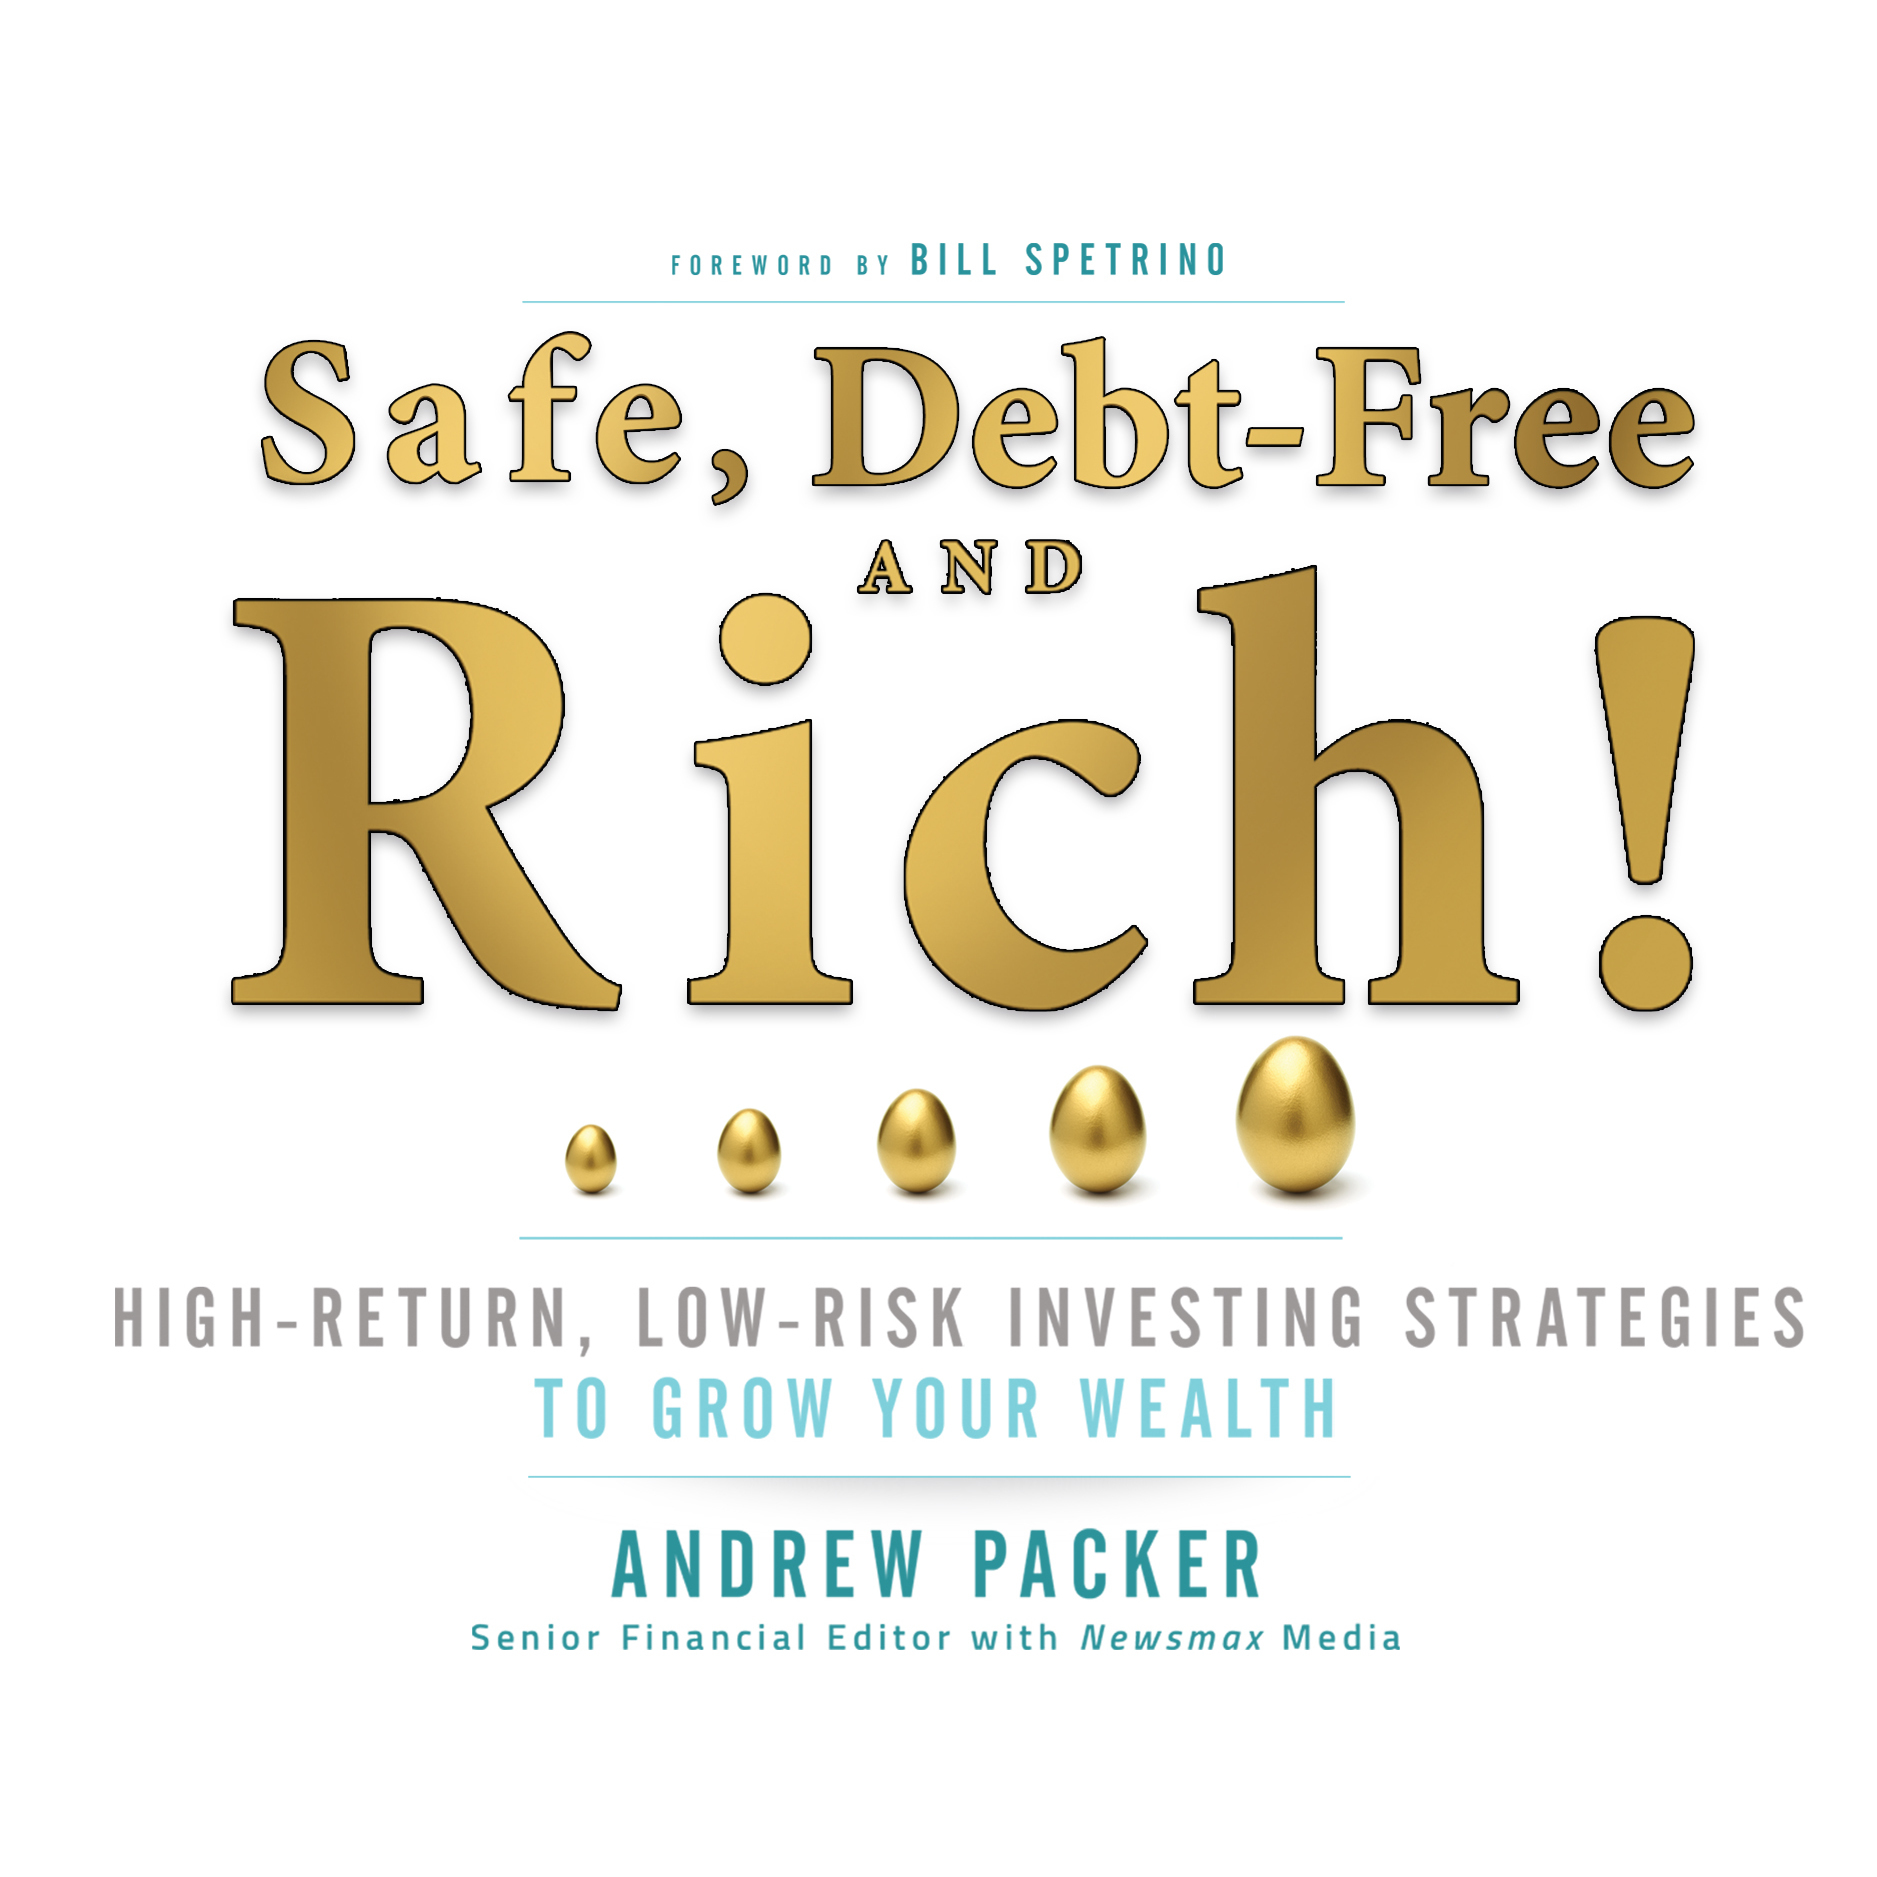 Printable Safe, Debt-Free, and Rich!: High-Return, Low-Risk Investing Strategies That Can Make You Wealthy Audiobook Cover Art